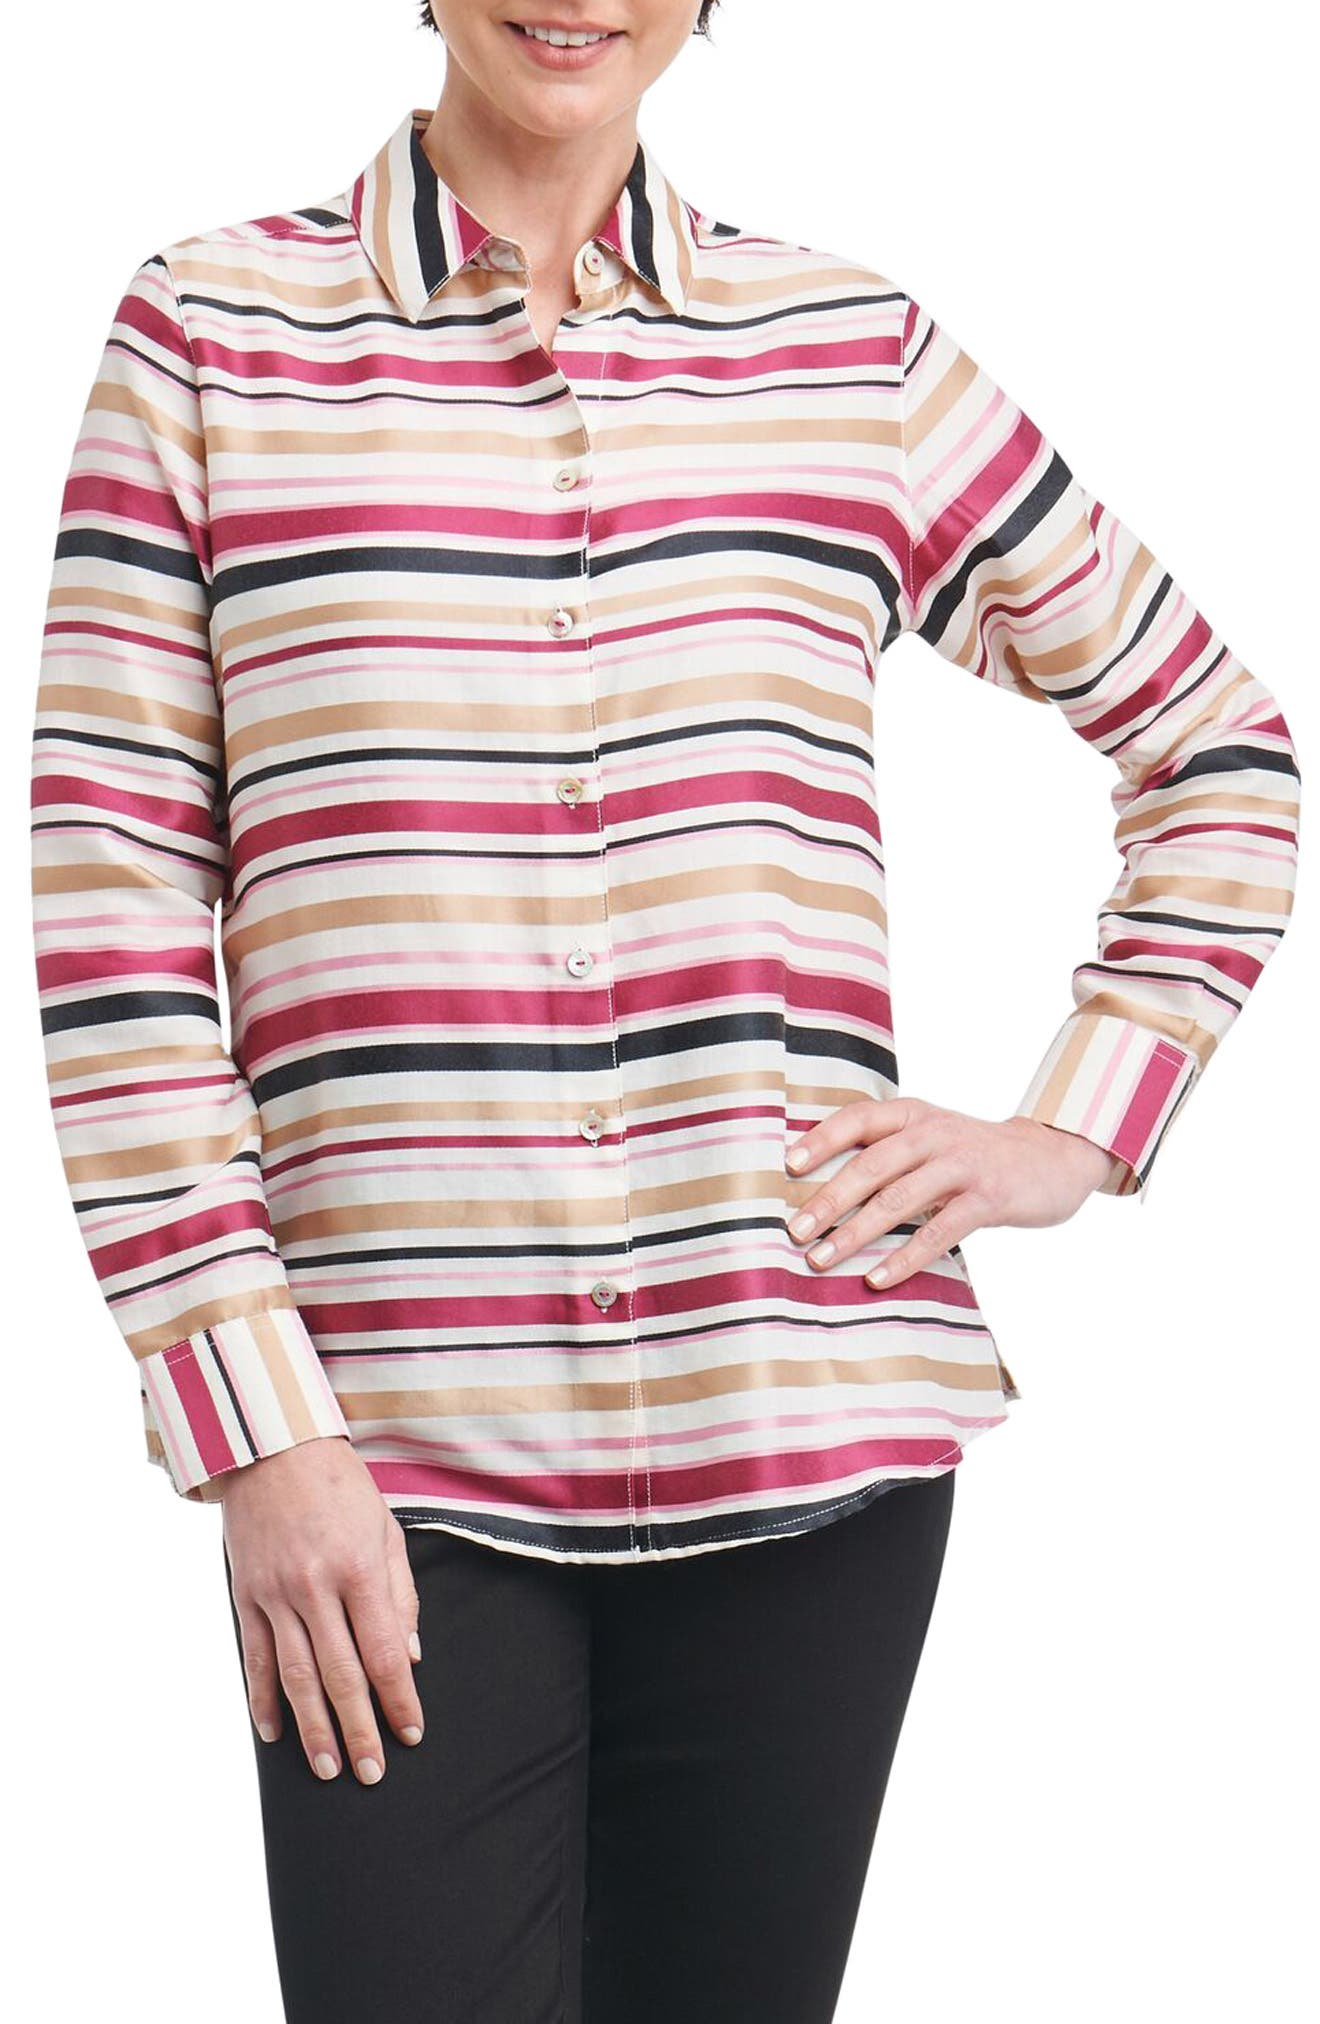 Addison Stripe Print Sateen Shirt,                             Main thumbnail 1, color,                             208